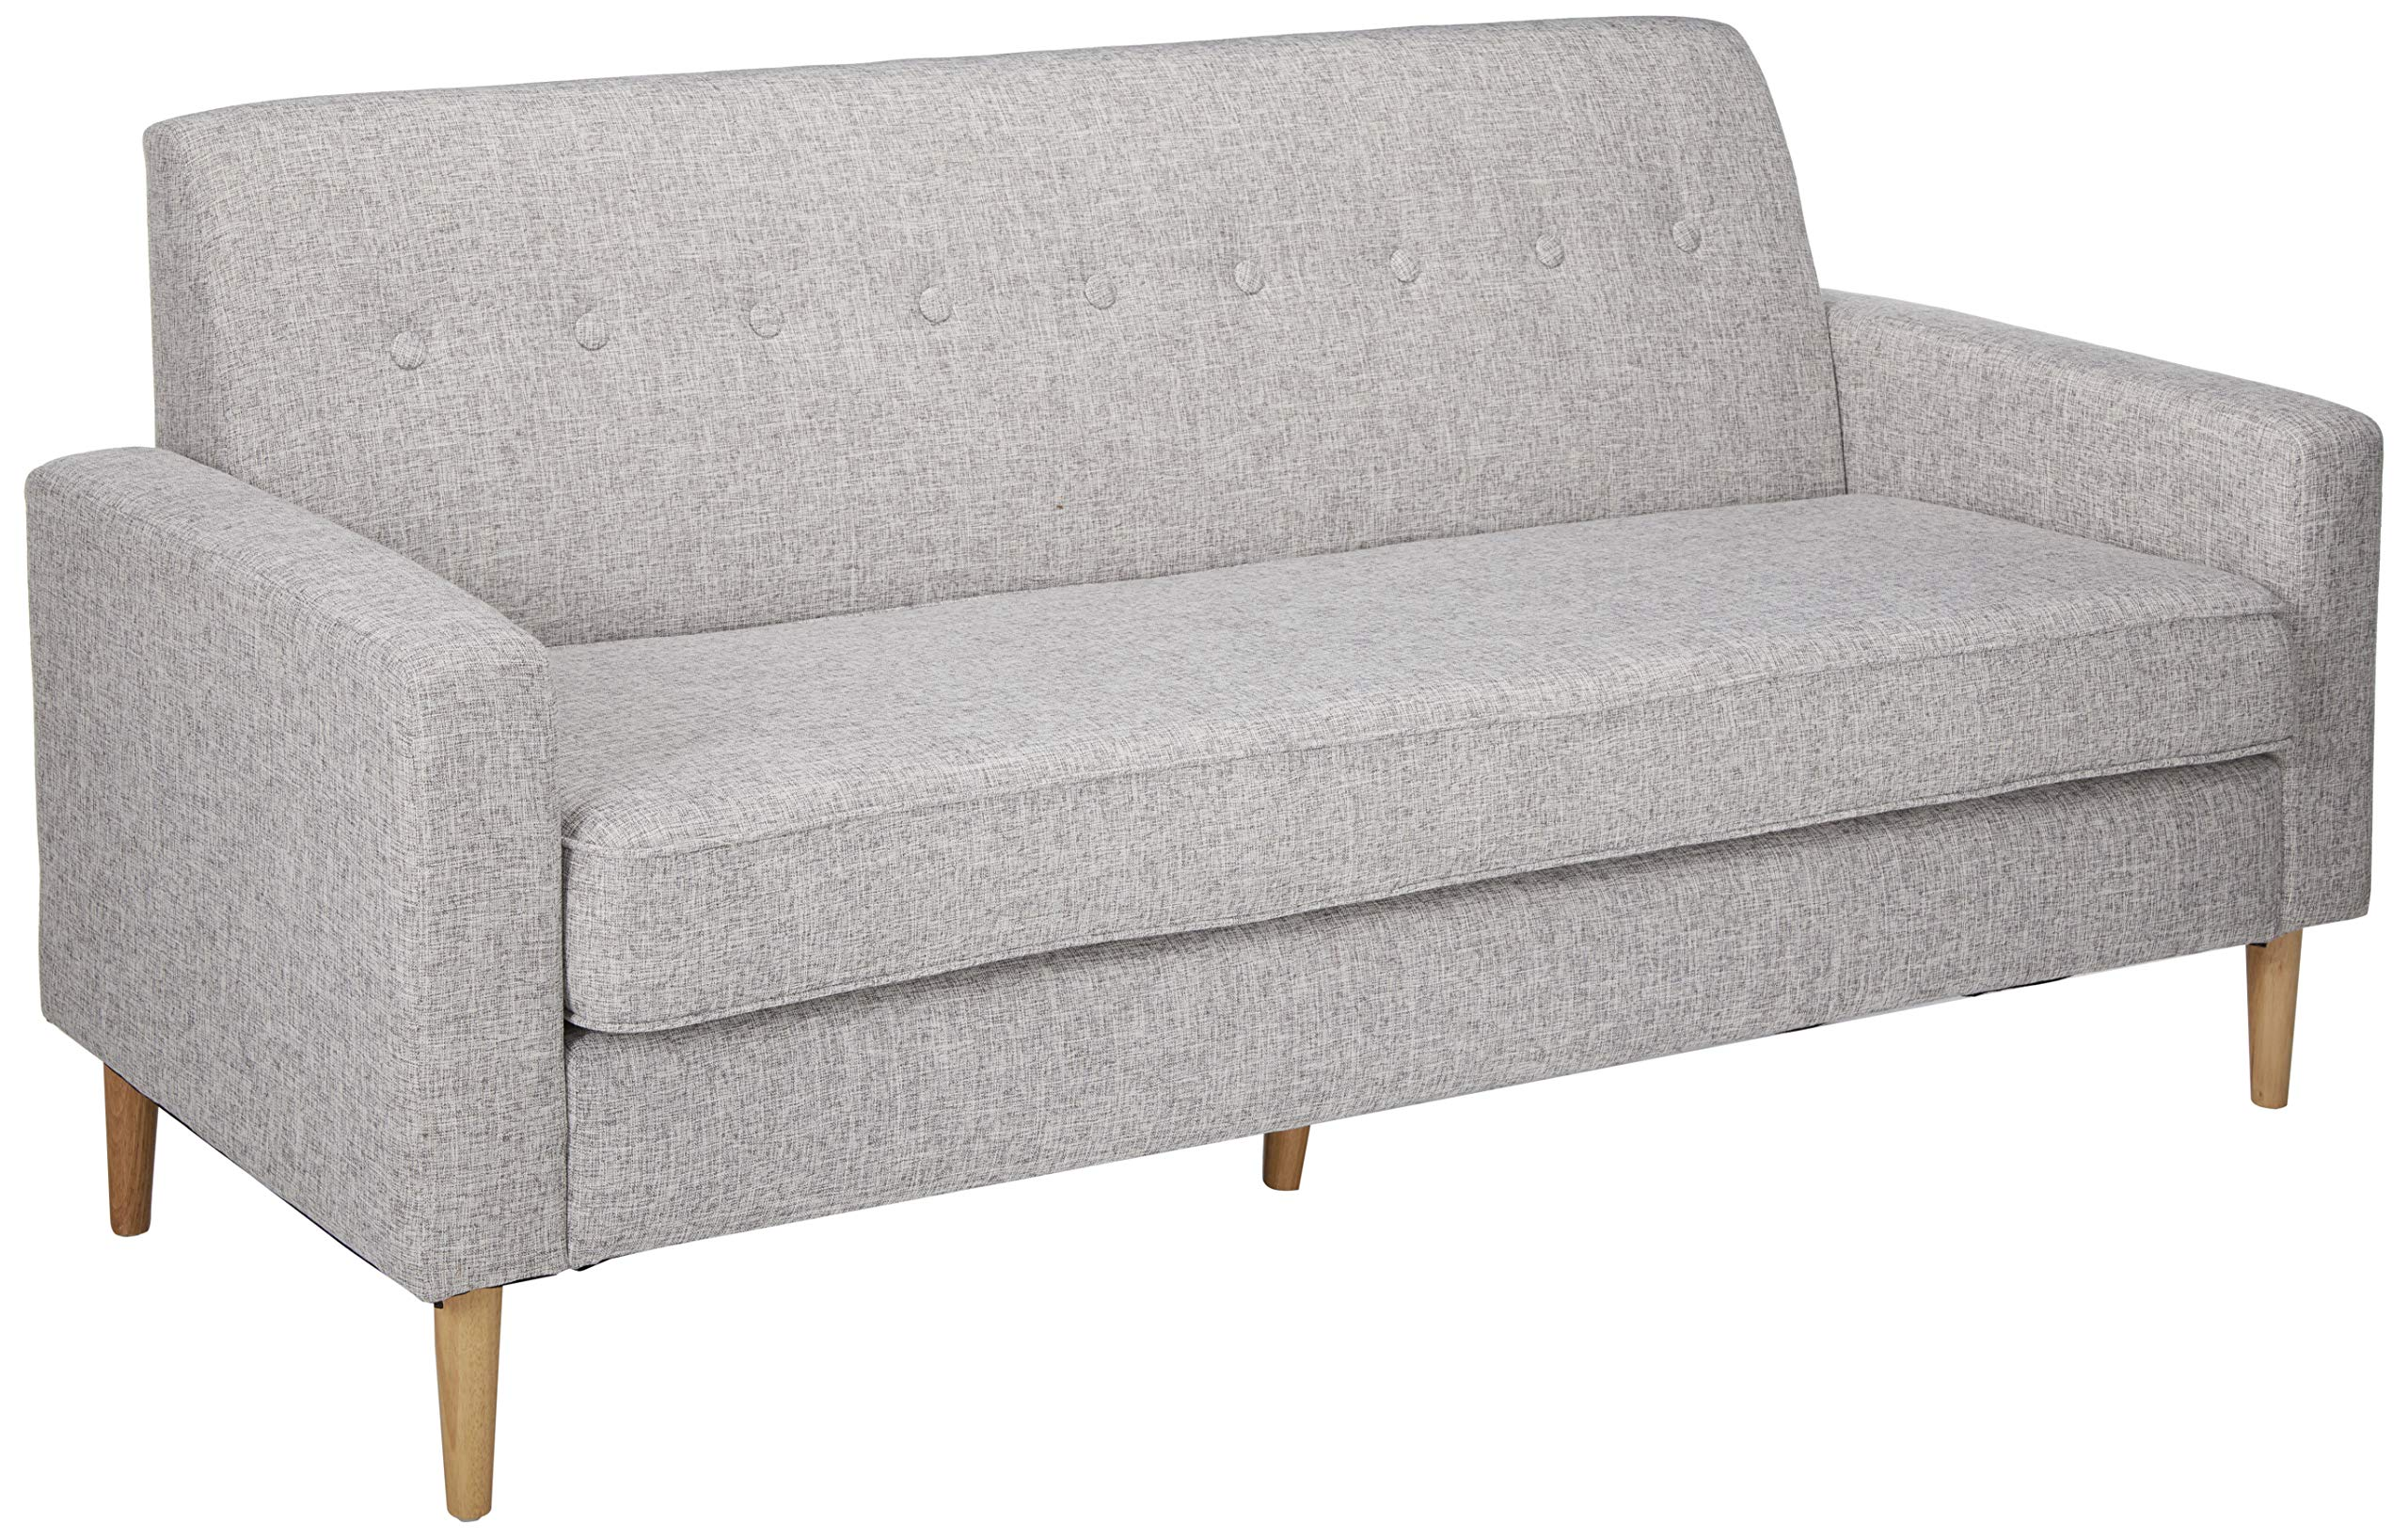 Christopher Knight Home Stratford Mid Century Modern Light Grey Tweed Fabric 3 Seater Sofa by Christopher Knight Home